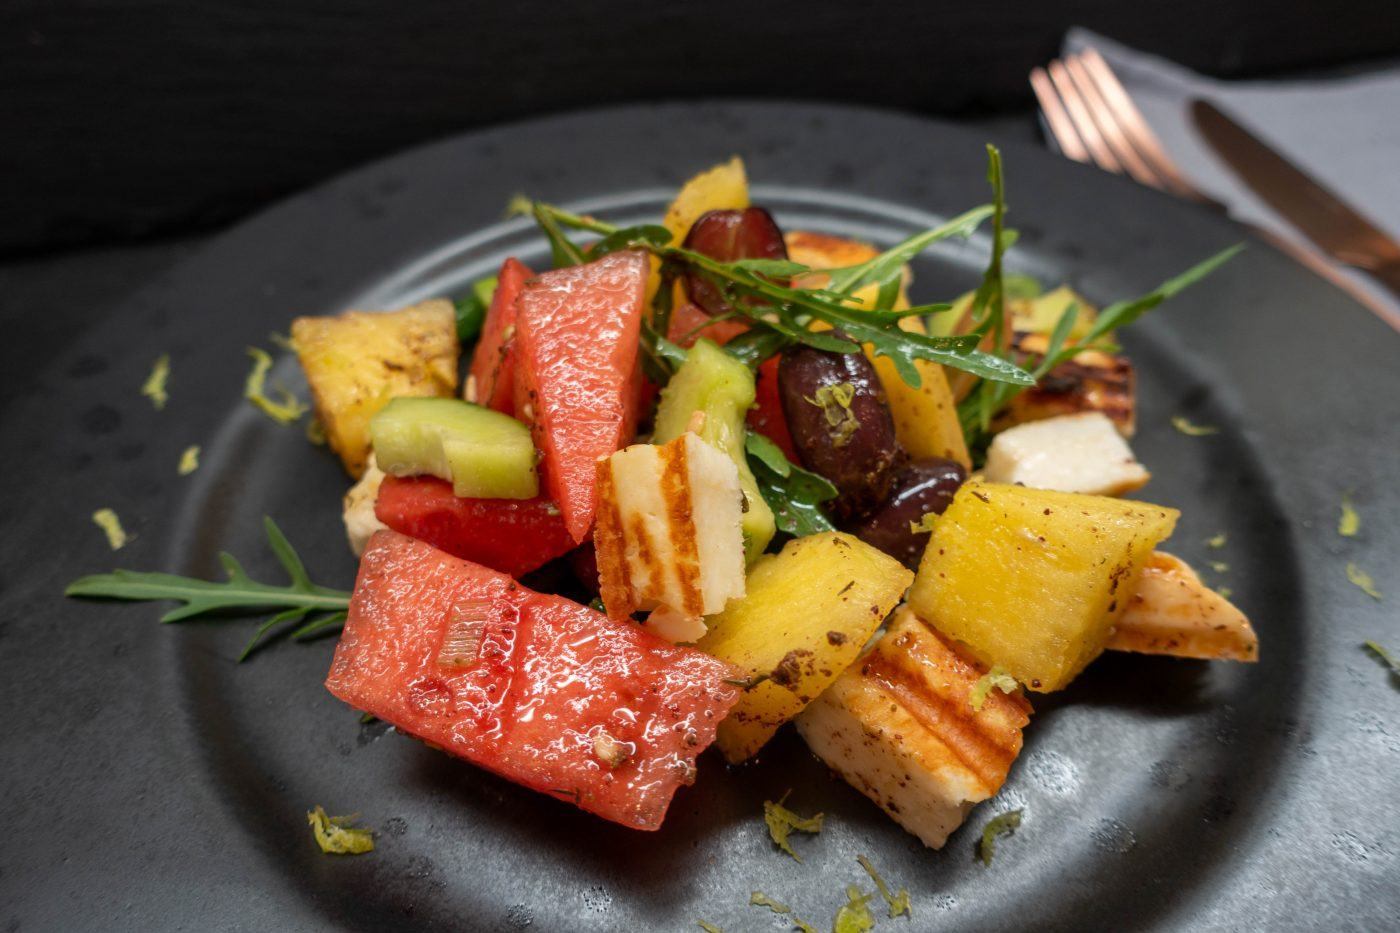 Summer salad with watermelon, halloumi and oriental spices